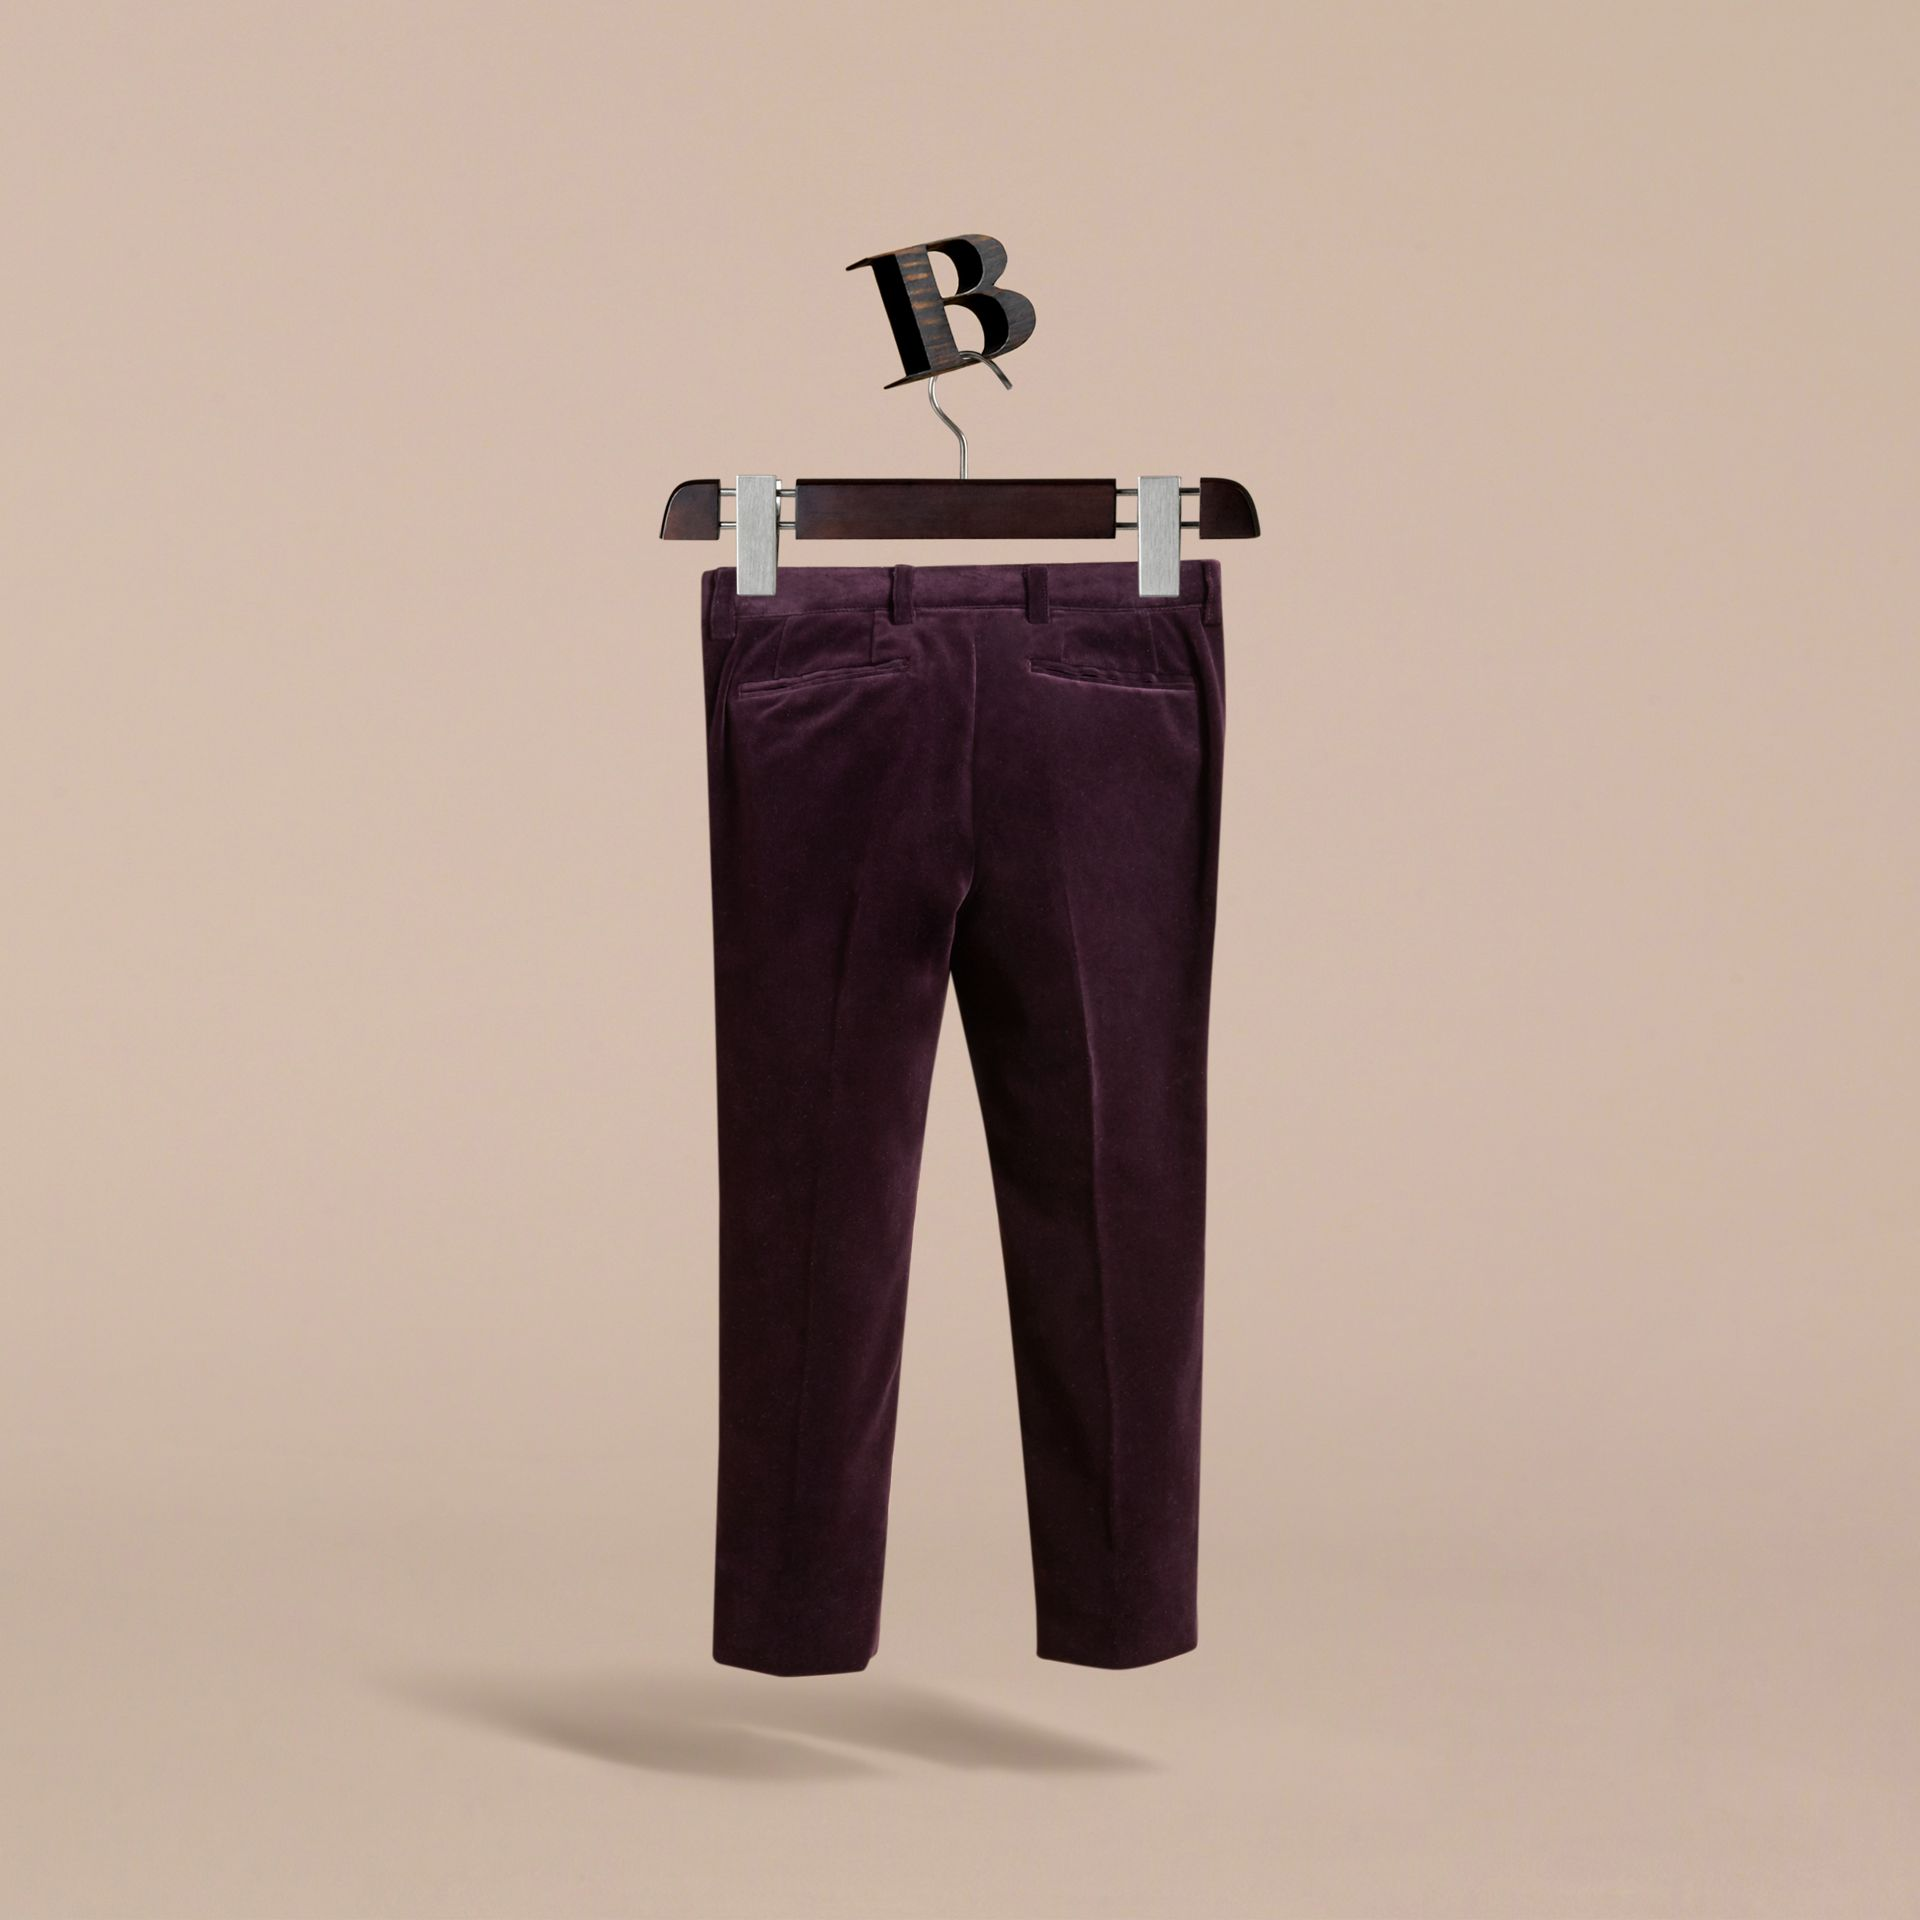 Tailored Velvet Tuxedo Trousers in Black Currant - Boy | Burberry - gallery image 4